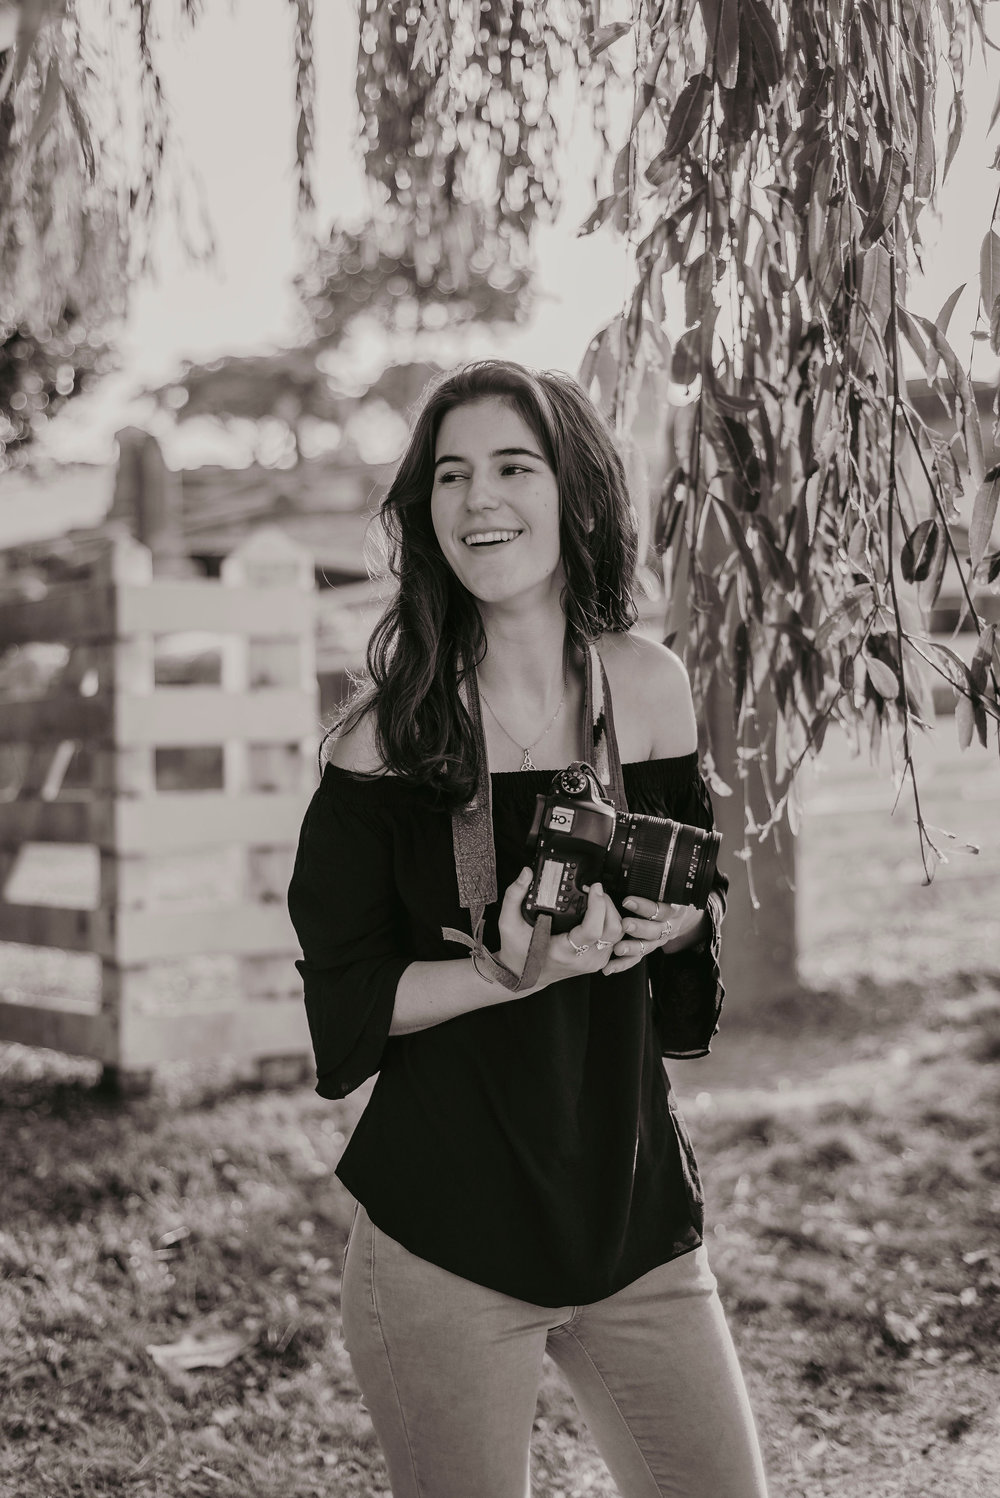 Hi there, I'm Jess. - I'm a portrait/lifestyle photographer based in Humboldt County, CA. I love adventuring, documenting life and the precious one of a kind moments. I am constantly inspired by the nature in Northern California and my photos tend to reflect the moody, romantic feel that the coast gives.Photography is my passion, and I am so proud to do what I love. I like to focus on capturing true emotion and the connection between others. I ensure that my clients feel comfortable during our shoot, because that's when the best photos happen! I want my clients to walk away from our session feeling comfortable, confident and feeling like they just made a friend.Let's shoot! I'll grab my camera and you show me your favorite place!Photography by Issa V Photography